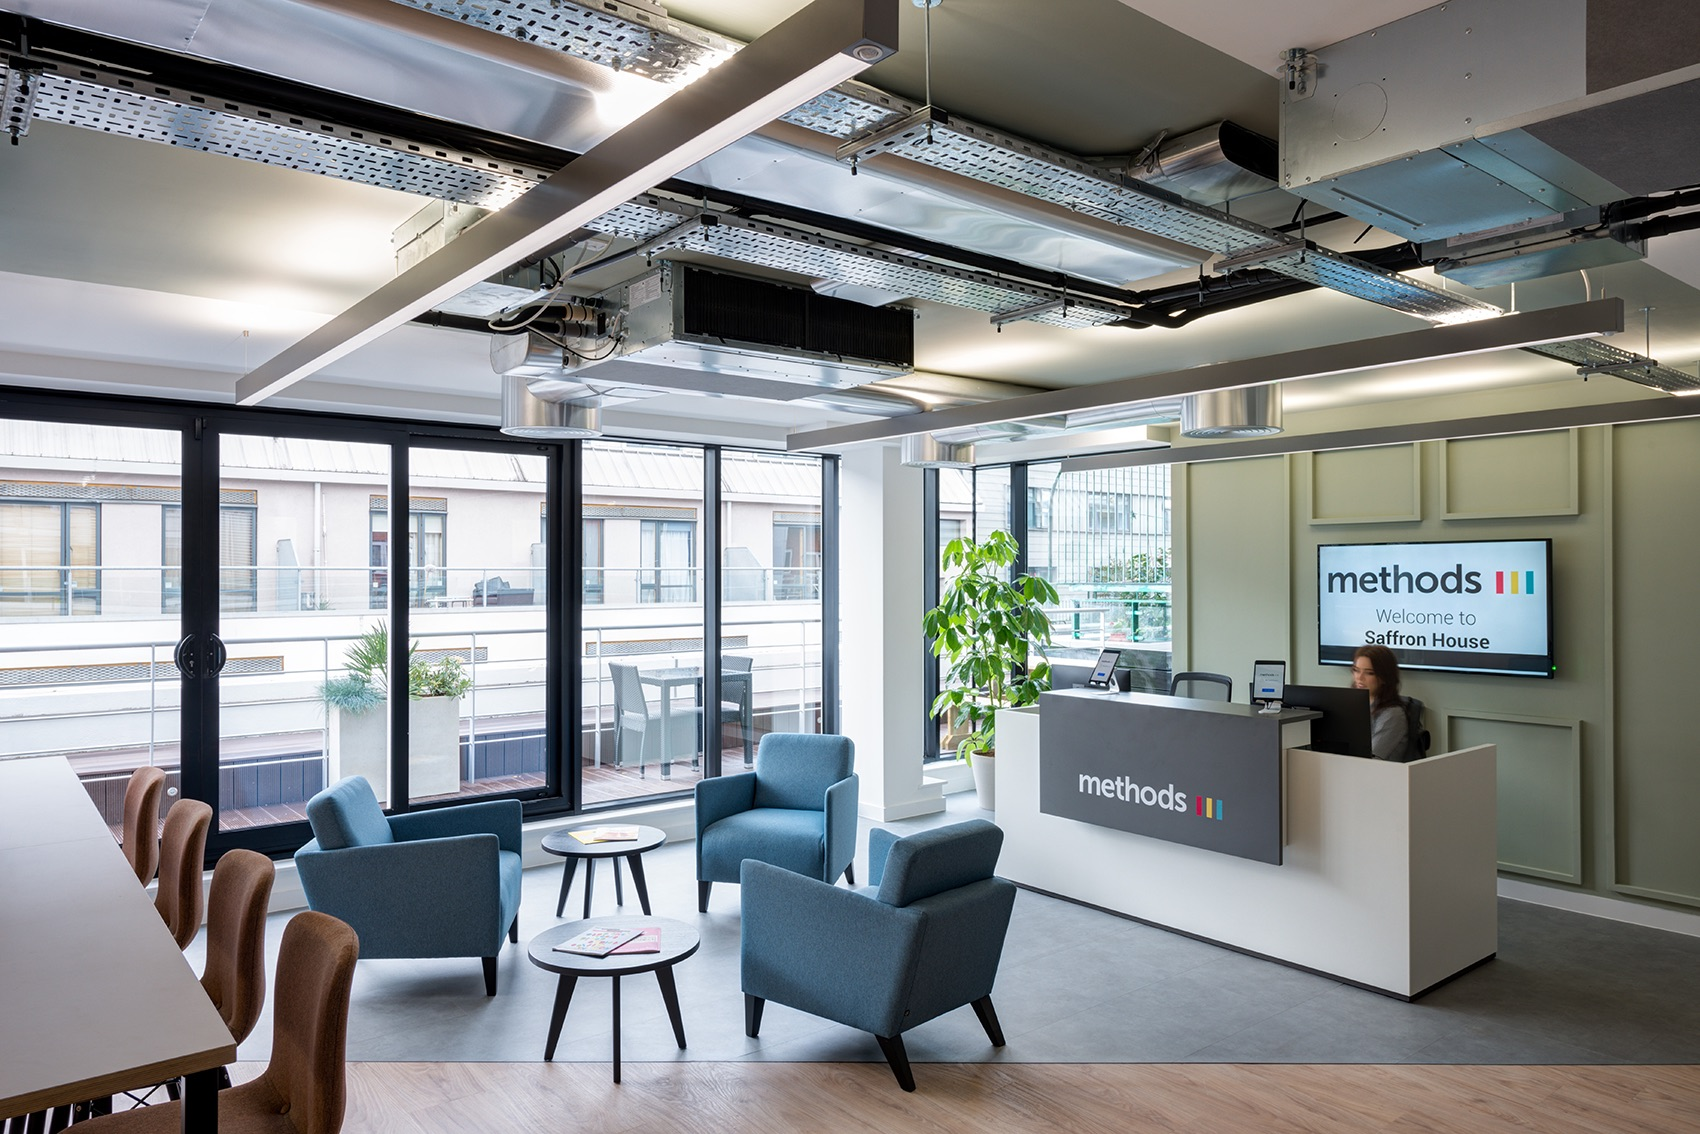 methods-london-office-1